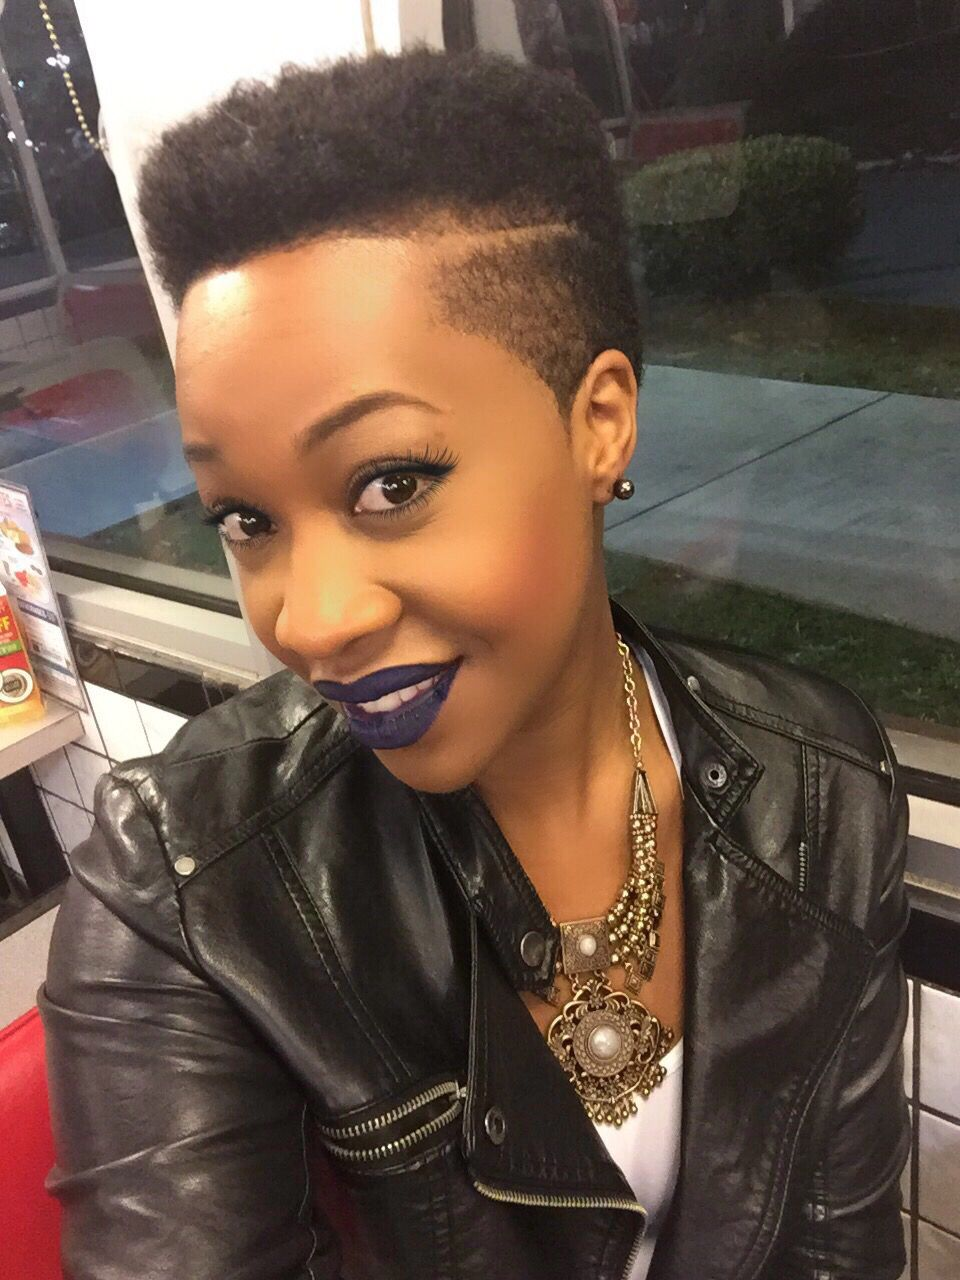 Tapered Fade Twa Side Part Low Cuts Natural Hair Black Women